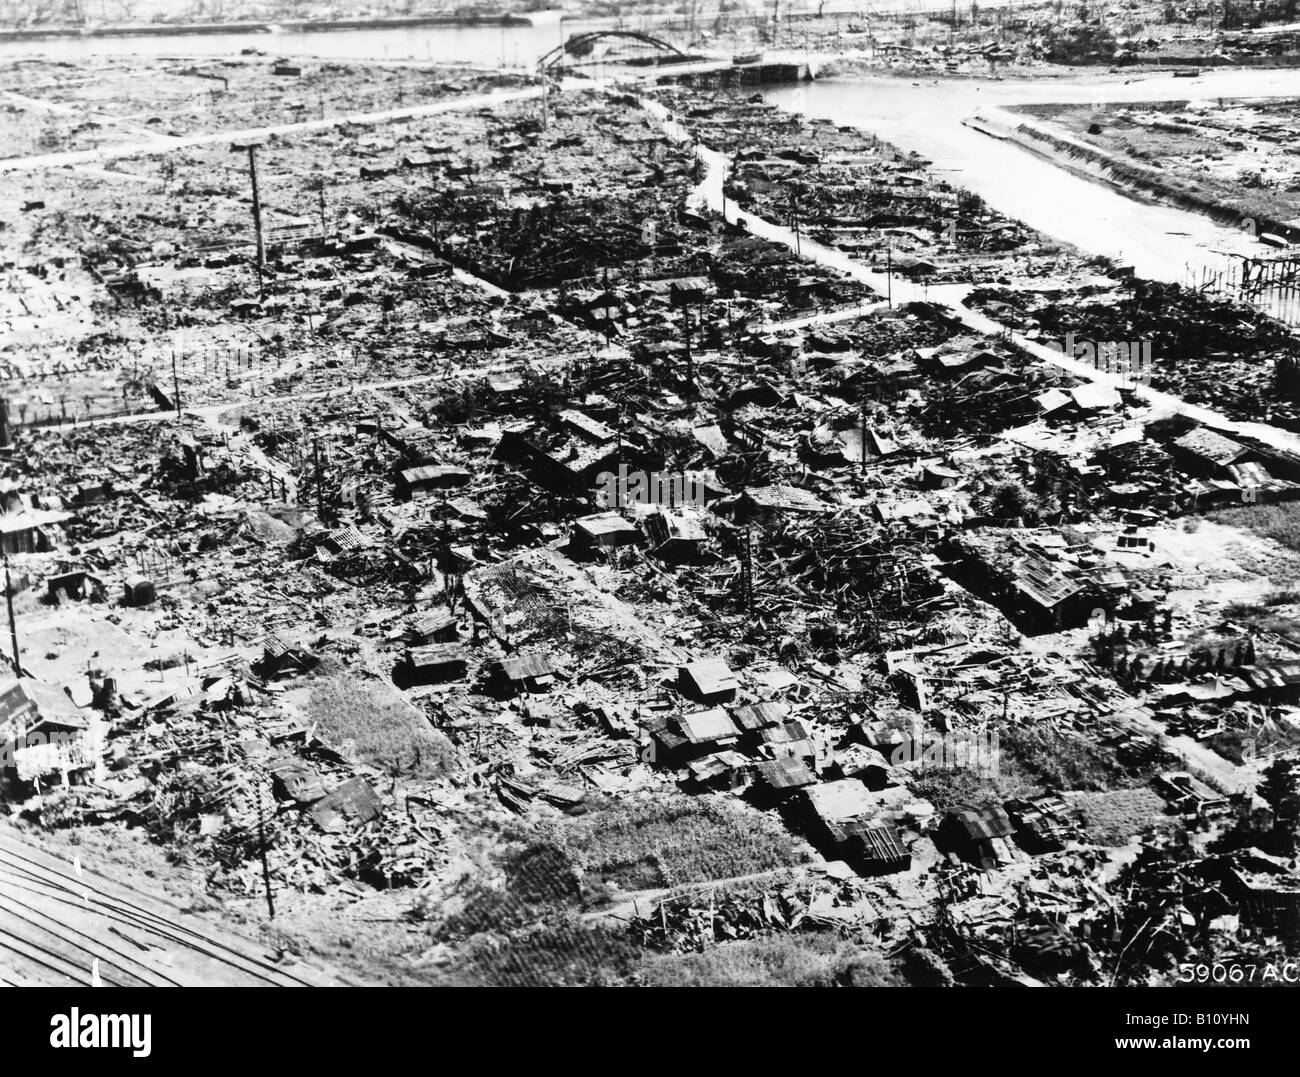 survivorss account of the atomic blast of 1945 in hiroshima Browse aftermath of atomic bombs dropped in hiroshima and nagasaki latest photos  two burn after the atomic explosion in hiroshima,1945  confronting images of.